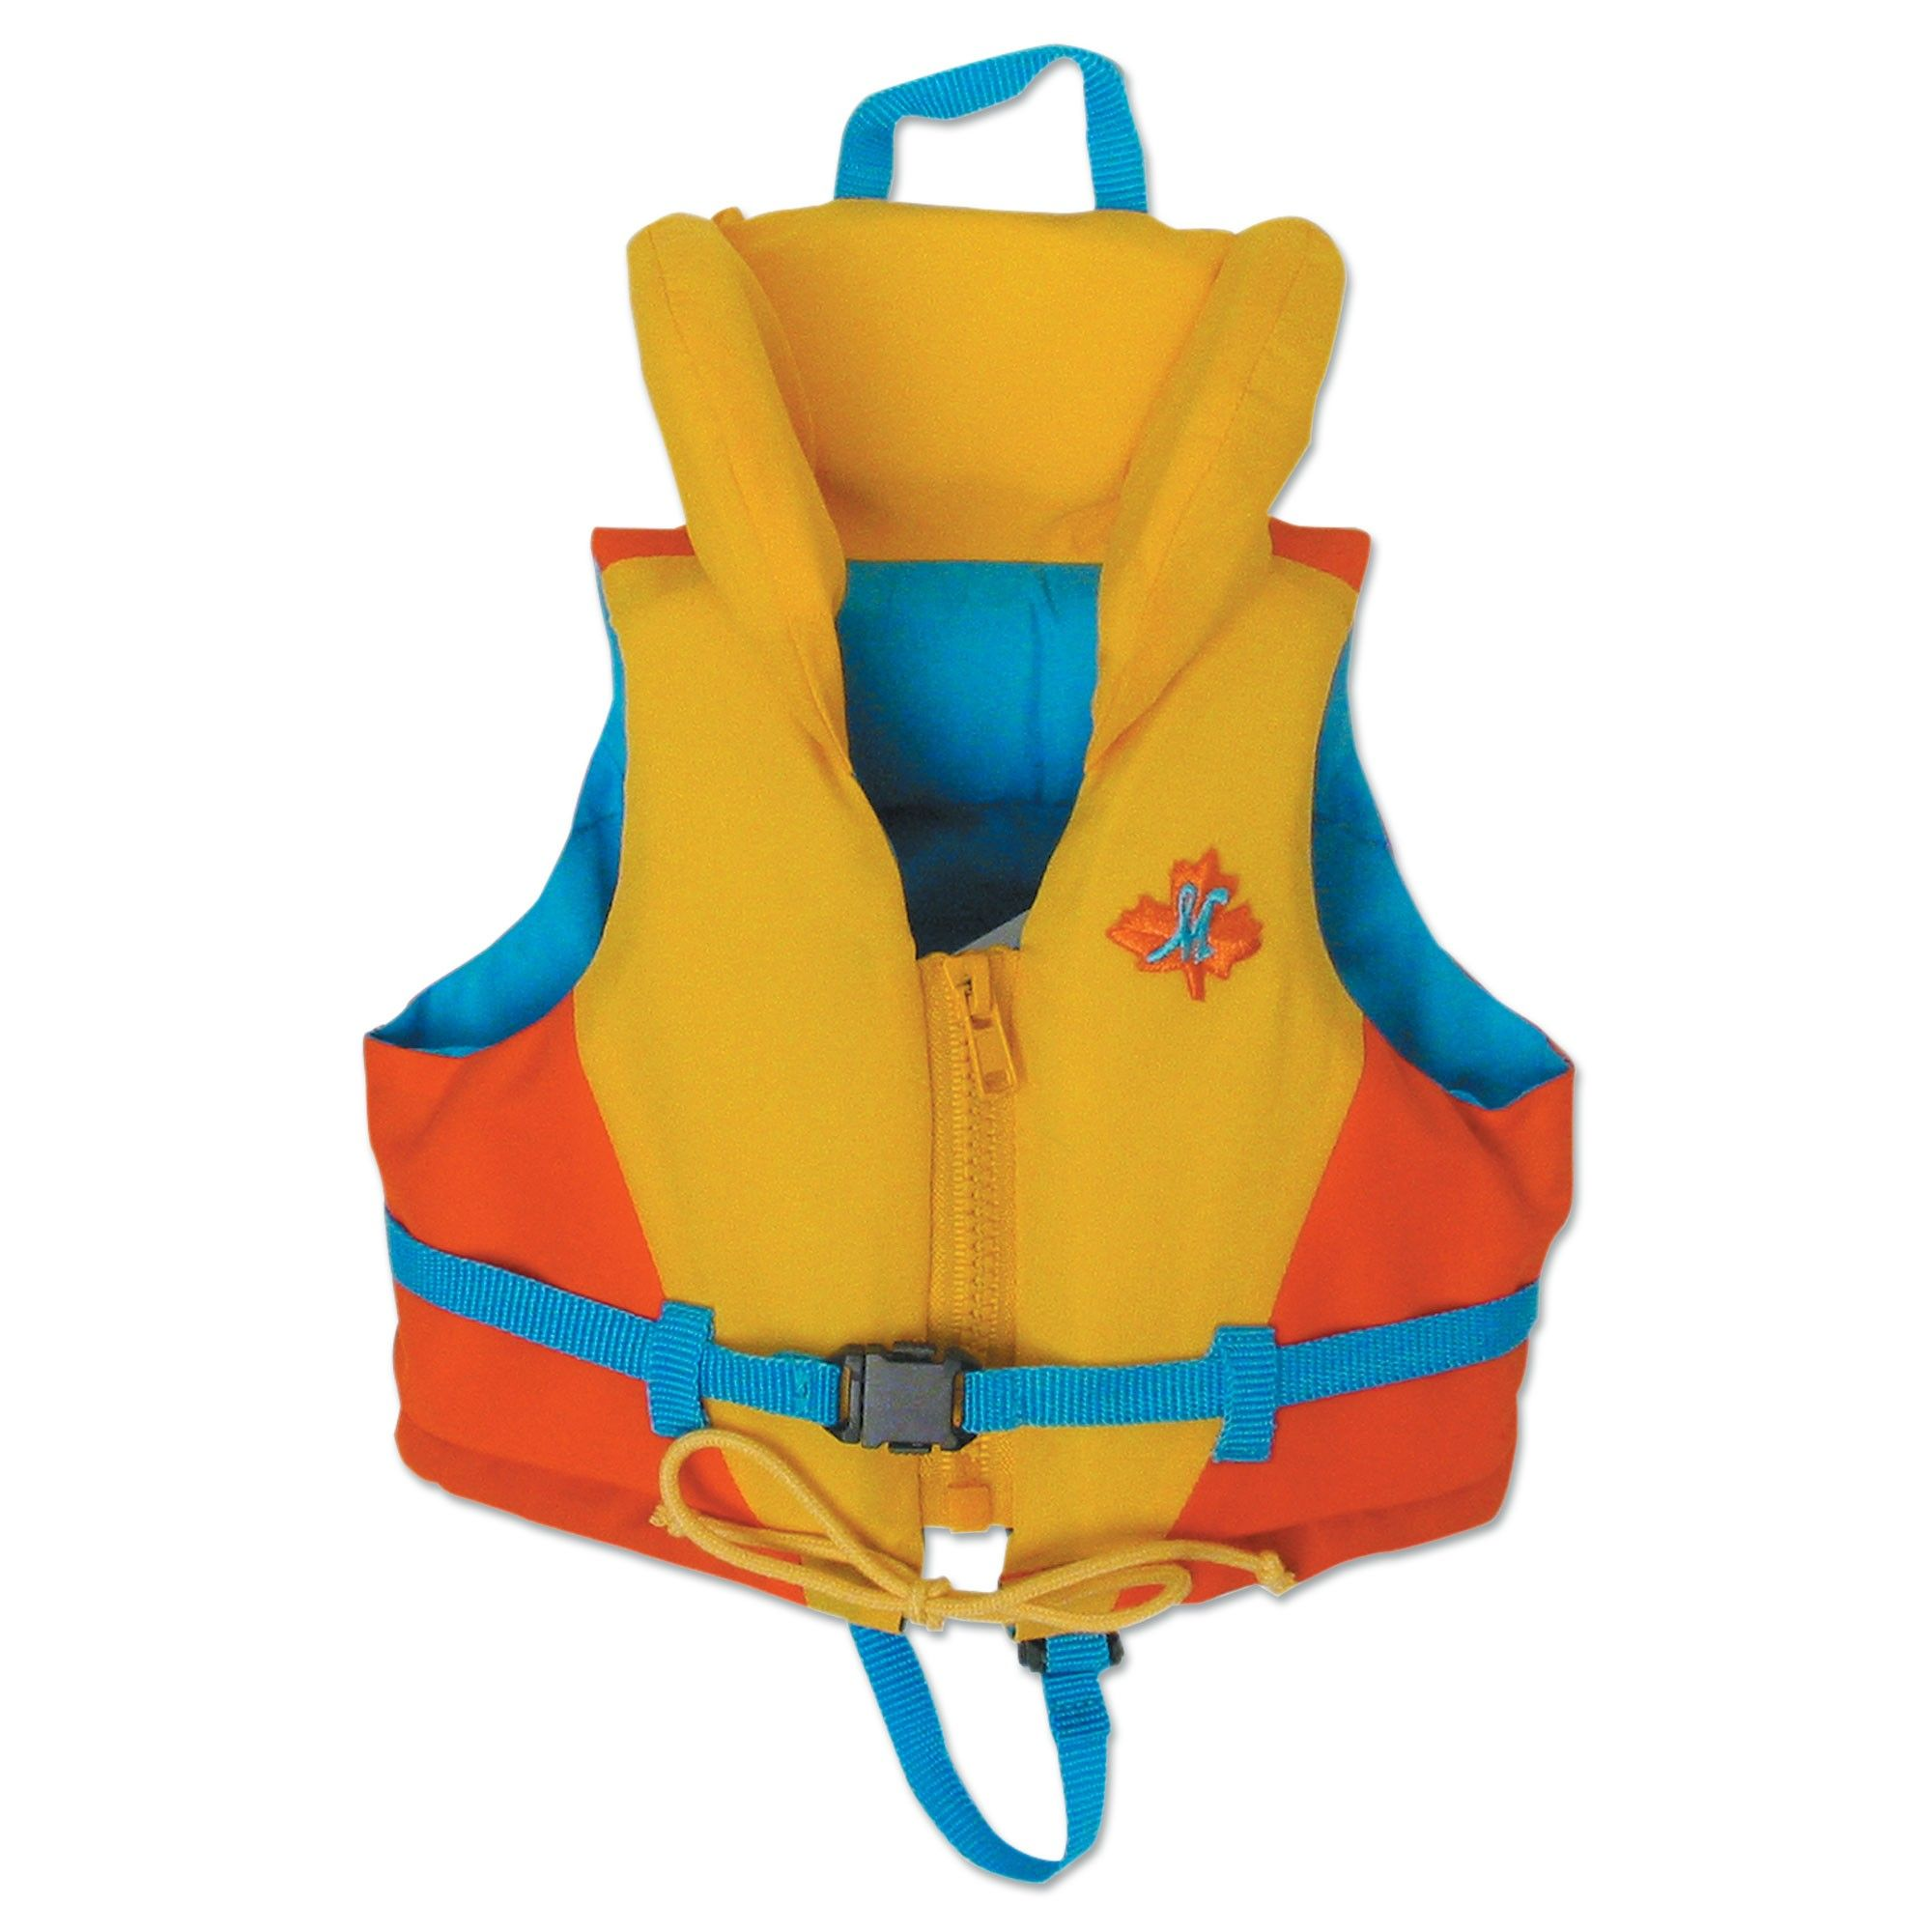 Lifejacket Outfit accessories, Beach wear outfits, Doll